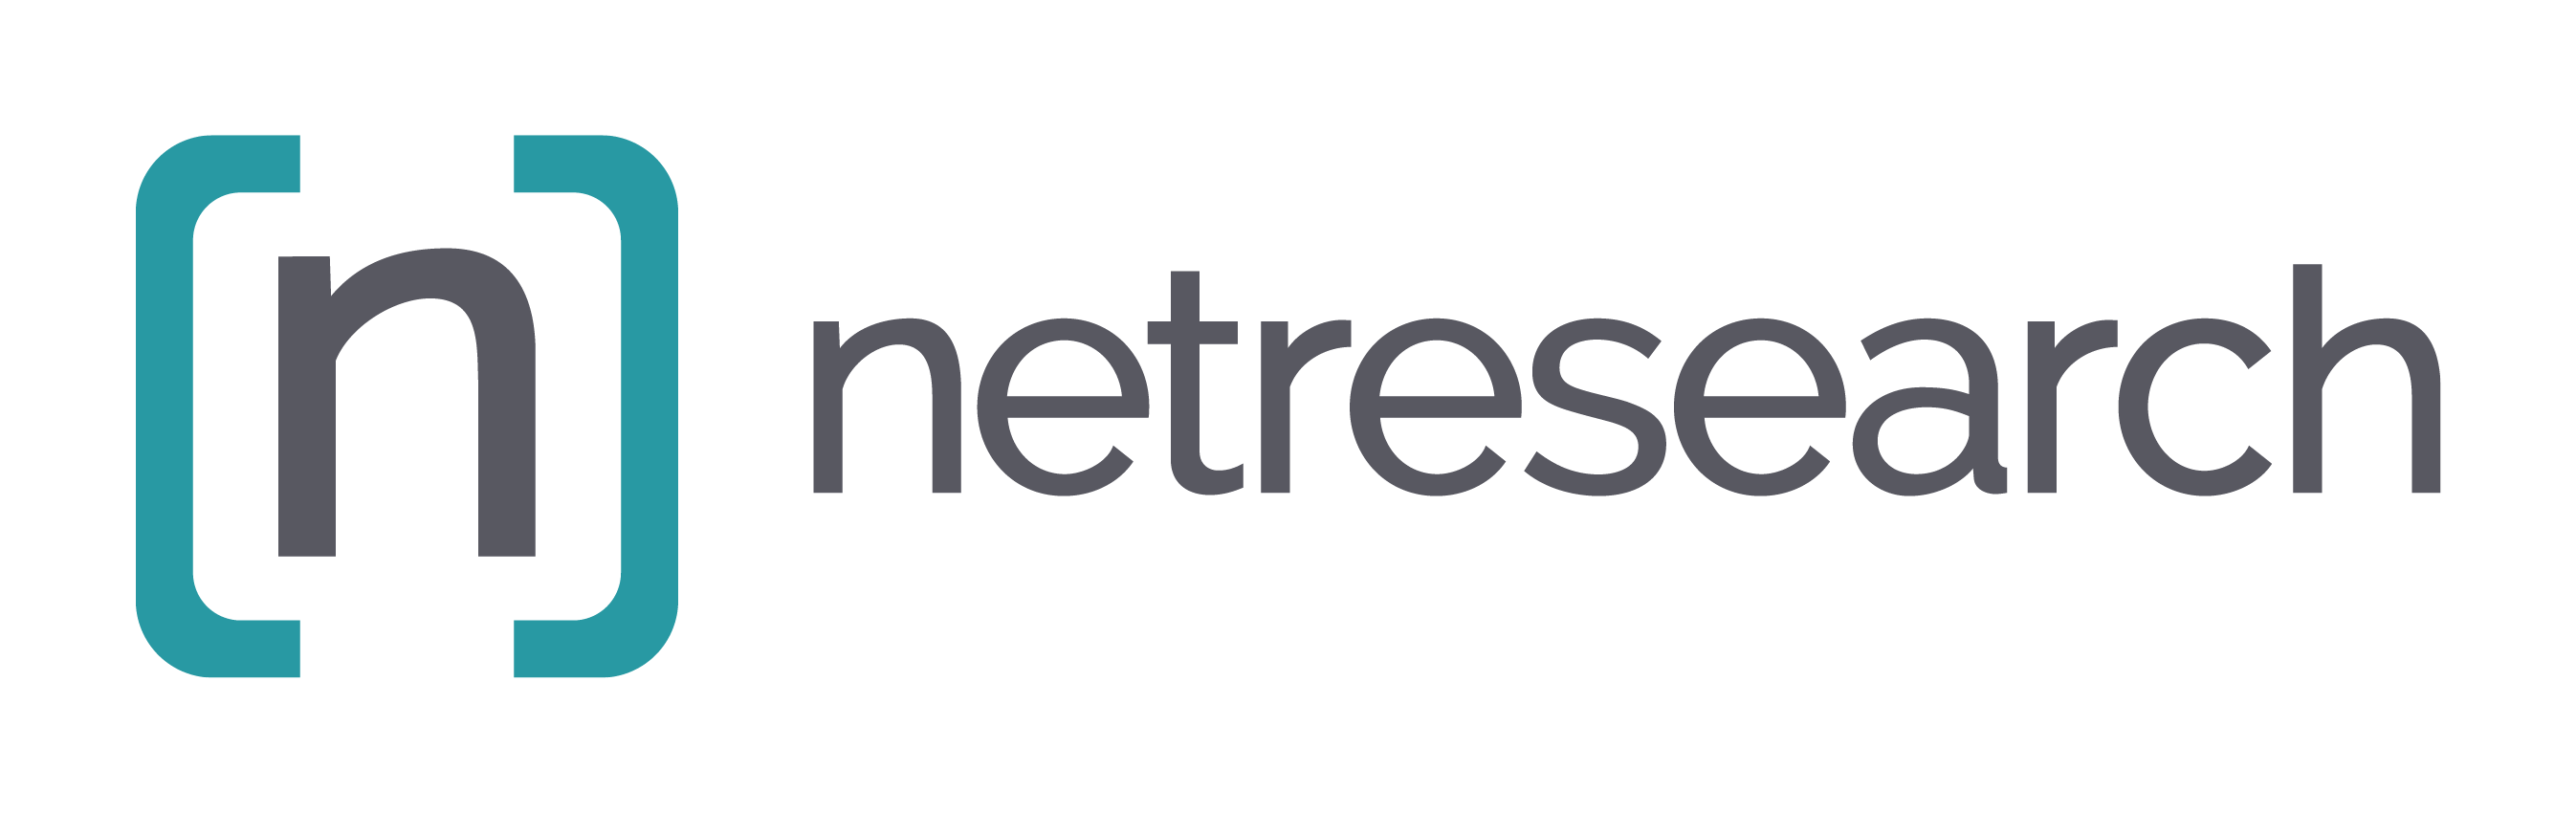 logo netresearch